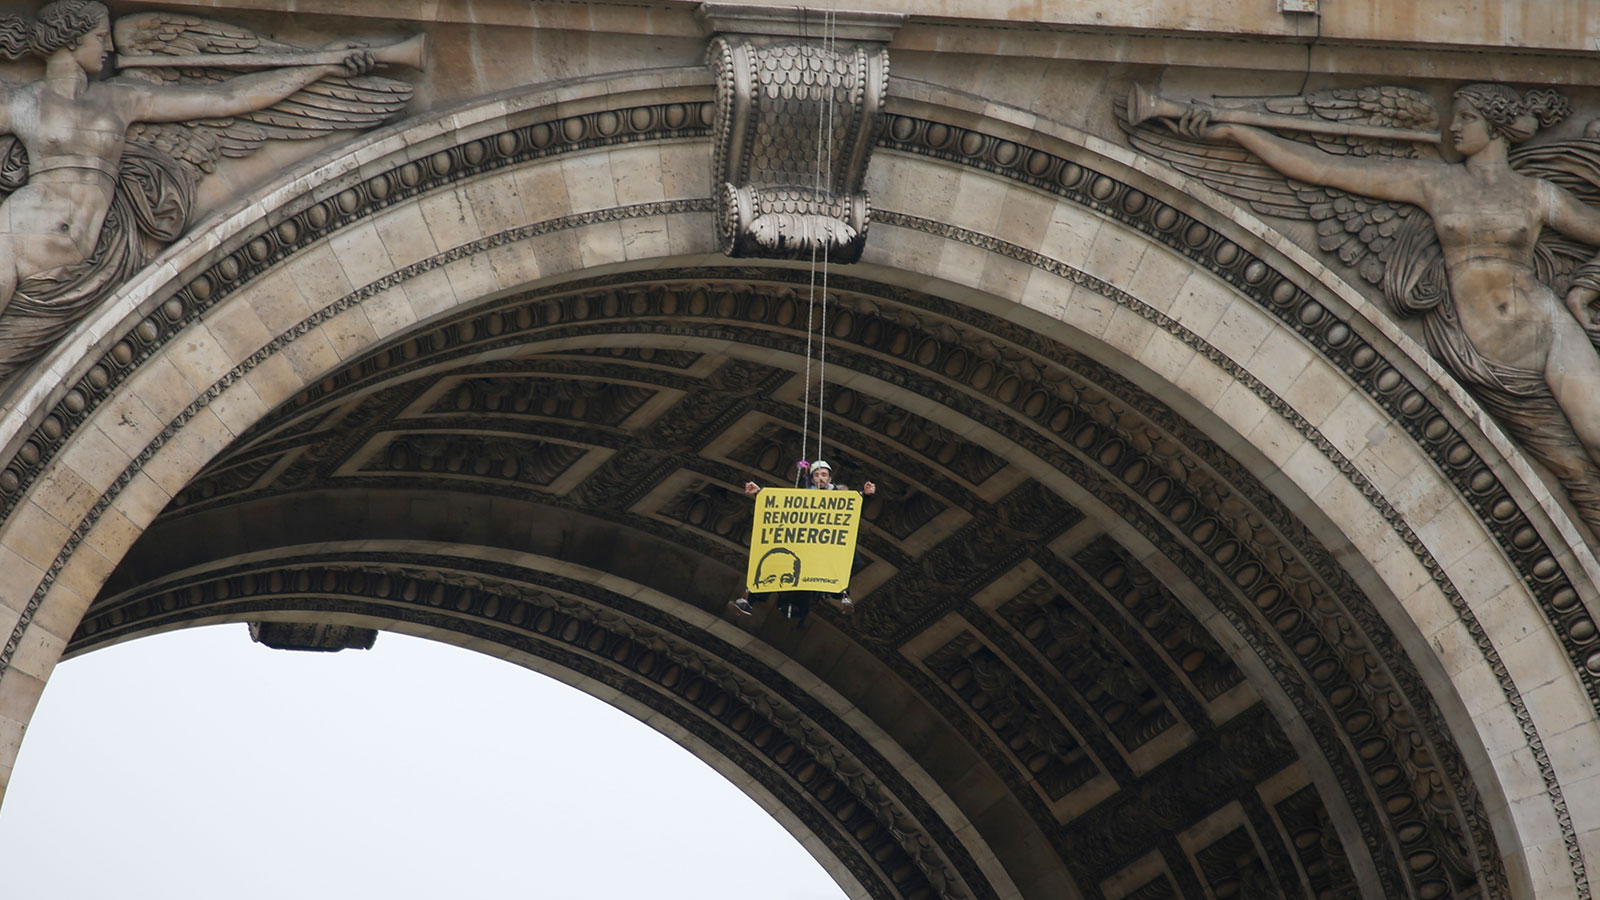 "A Greenpeace activist hangs with a banner reading ""Mister Hollande, renew energy"" from the top of the Arc de Triomphe during a protest on the Champs Elysees avenue in Paris, France, December 11, 2015 as part of the World Climate Change Conference 2015 (COP21)."